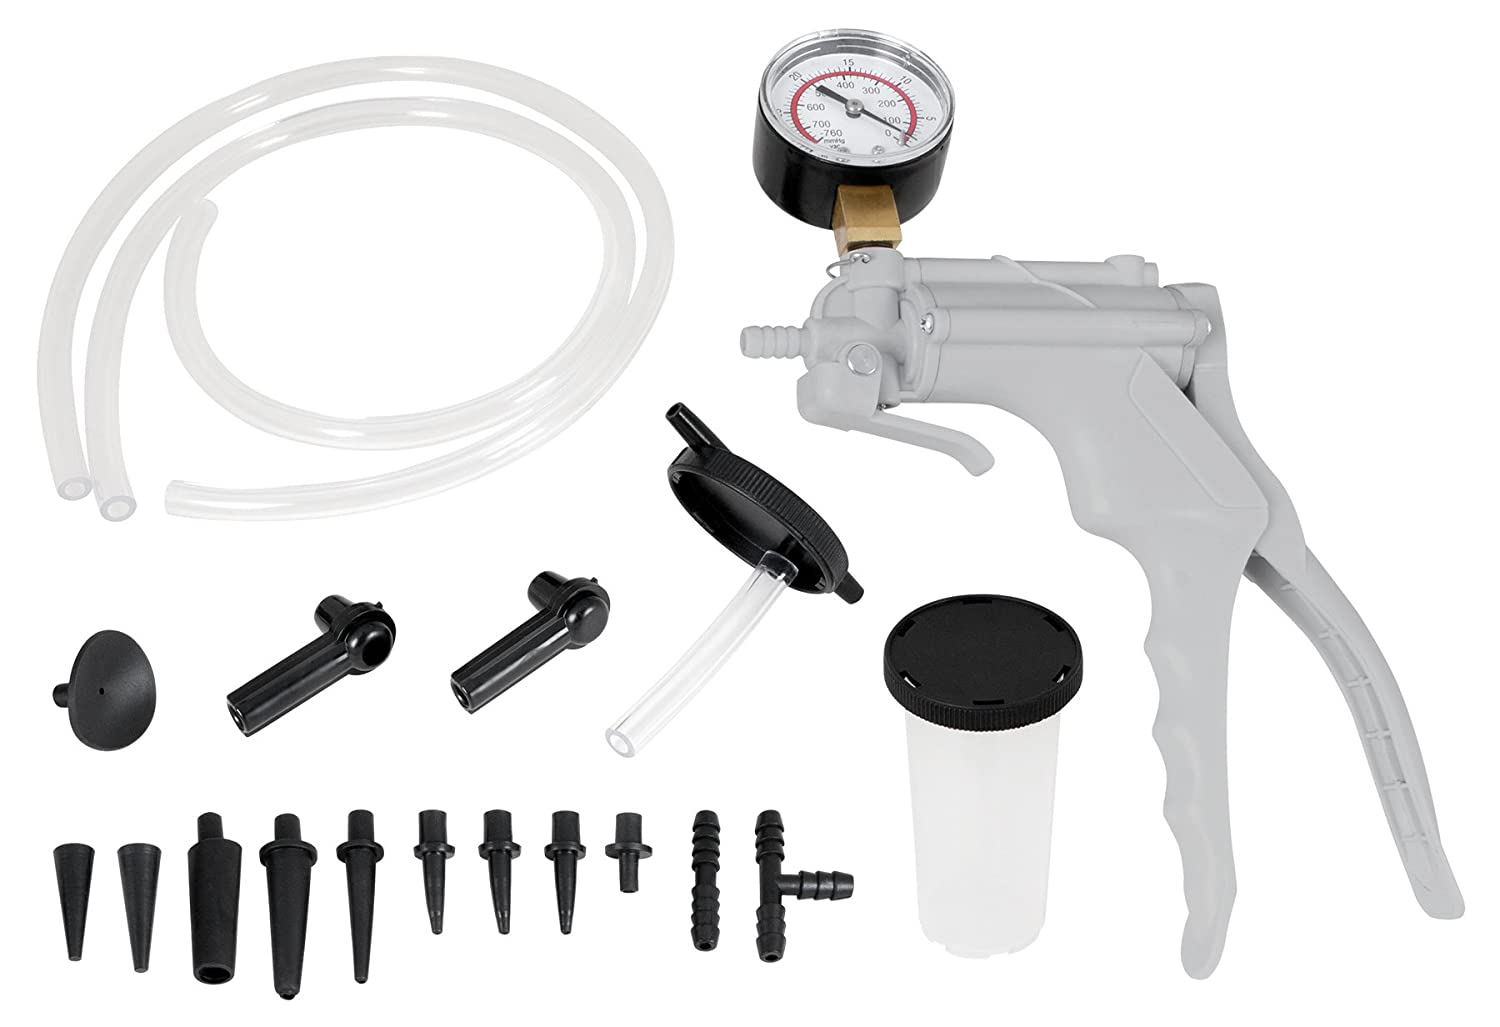 Performance Tool W87030 One Man Automotive Hand Vacuum Pump Test & Brake Bleeder Kit